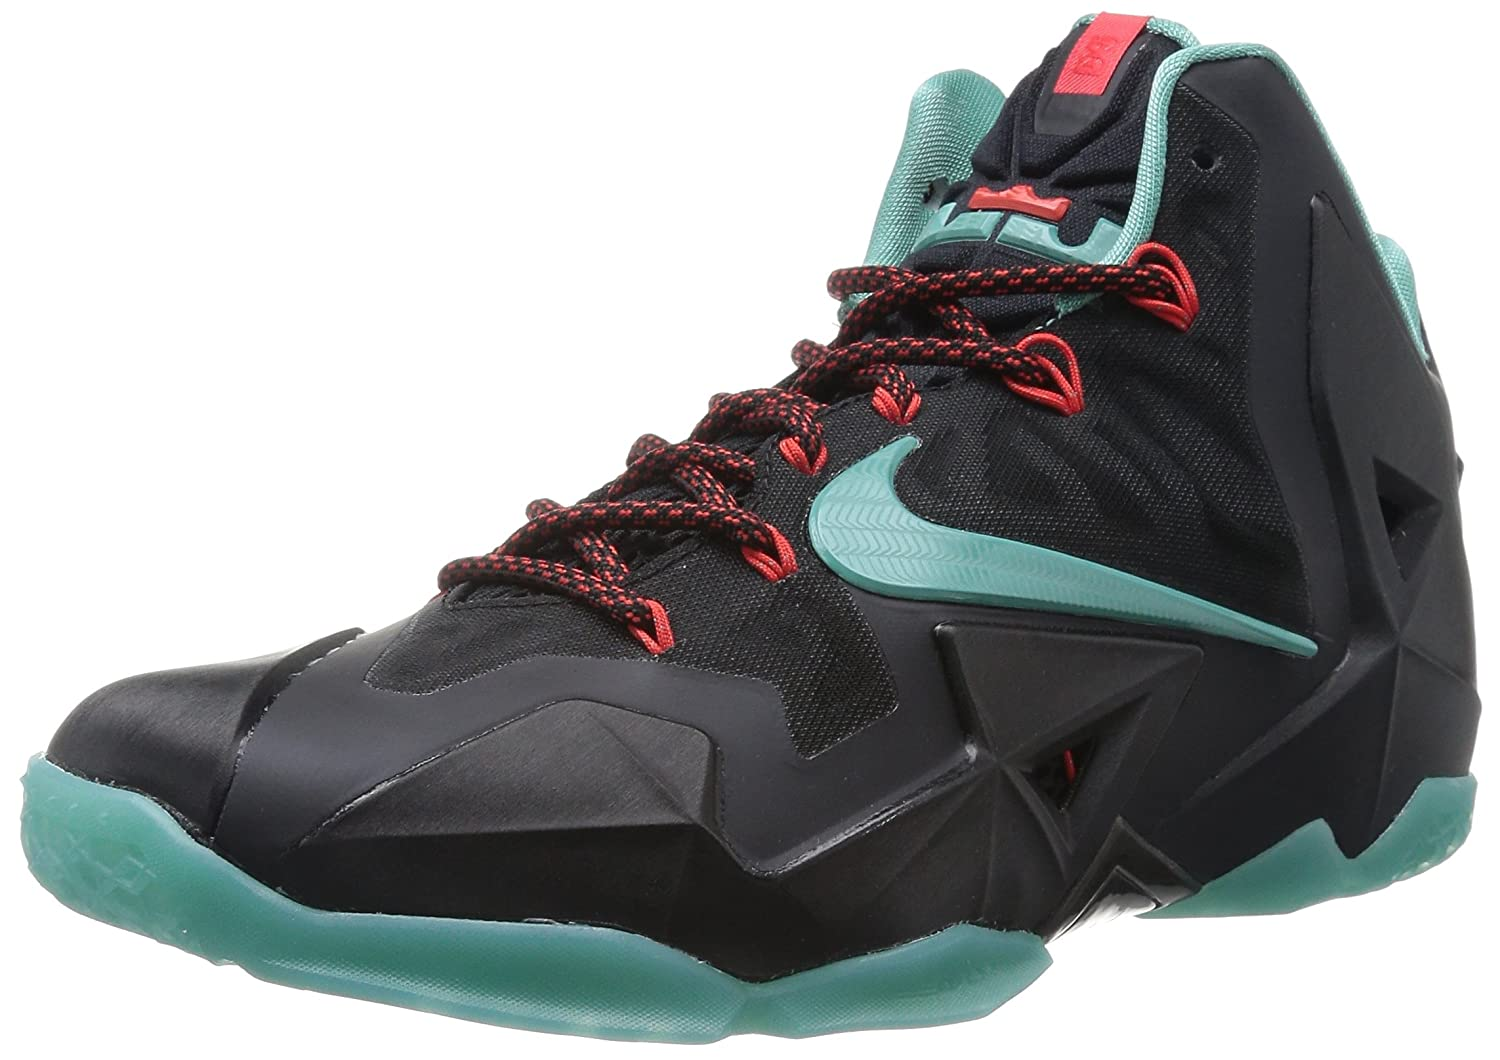 lebron xi. amazon.com | nike lebron xi gamma blue men\u0027s basketball shoe lebron xi 2